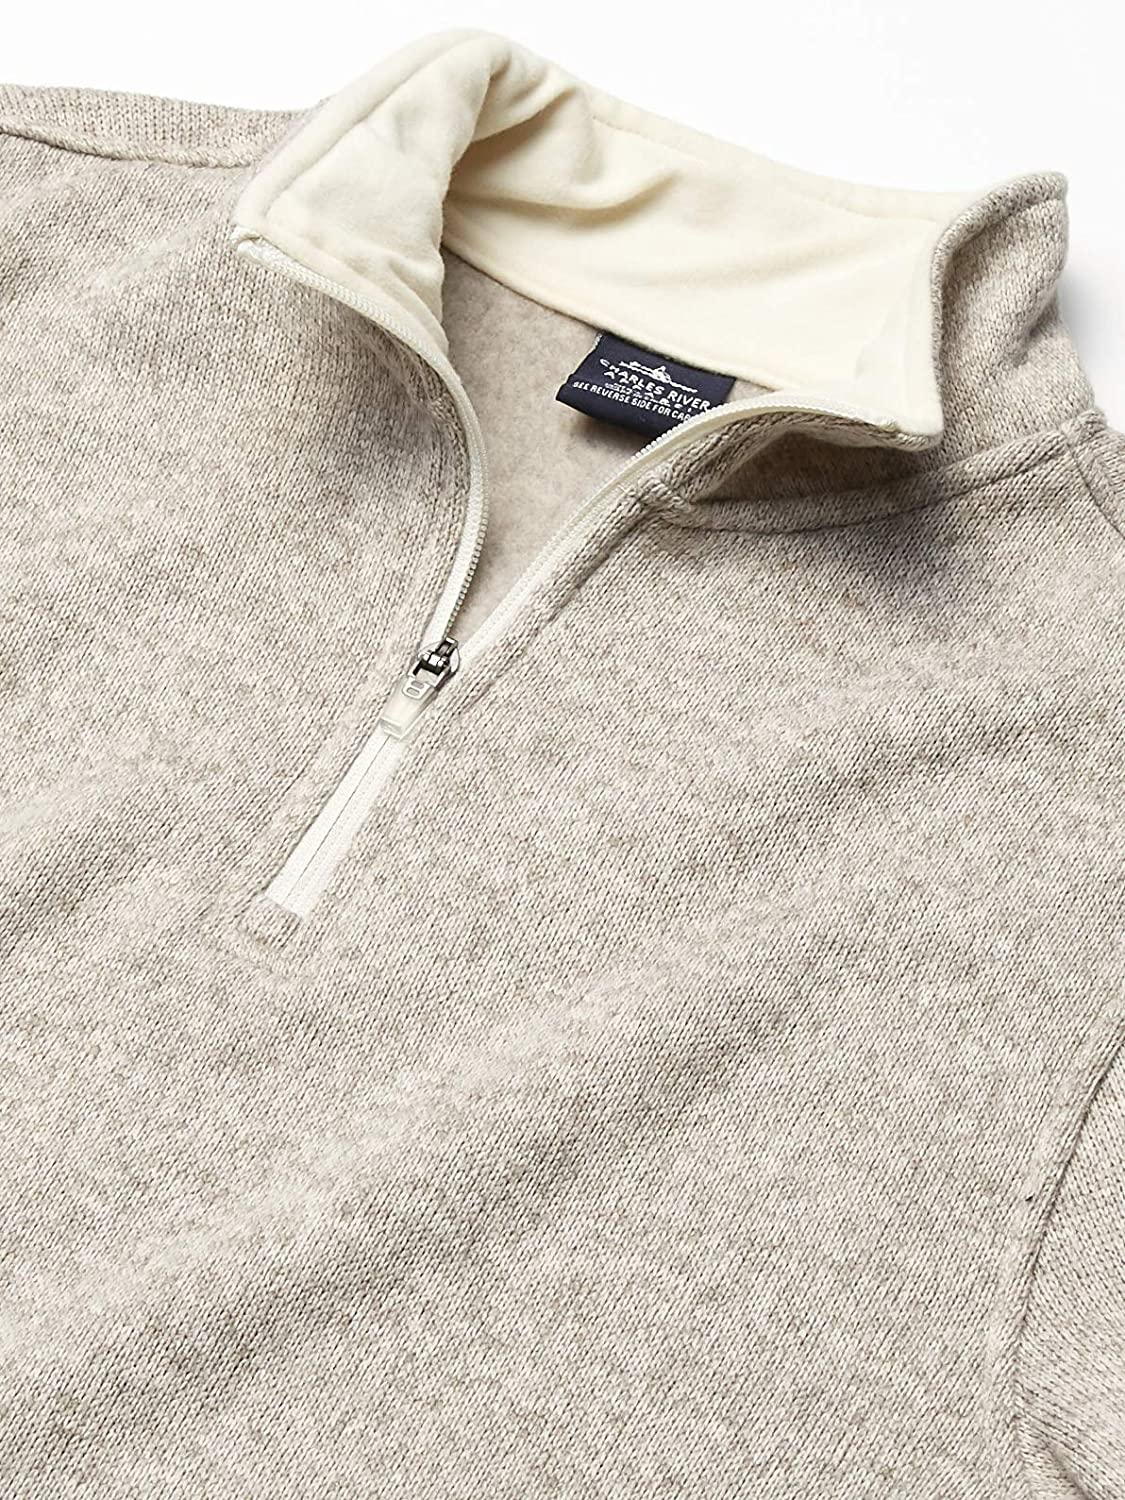 Charles River Apparel Mens Heathered Fleece Pullover